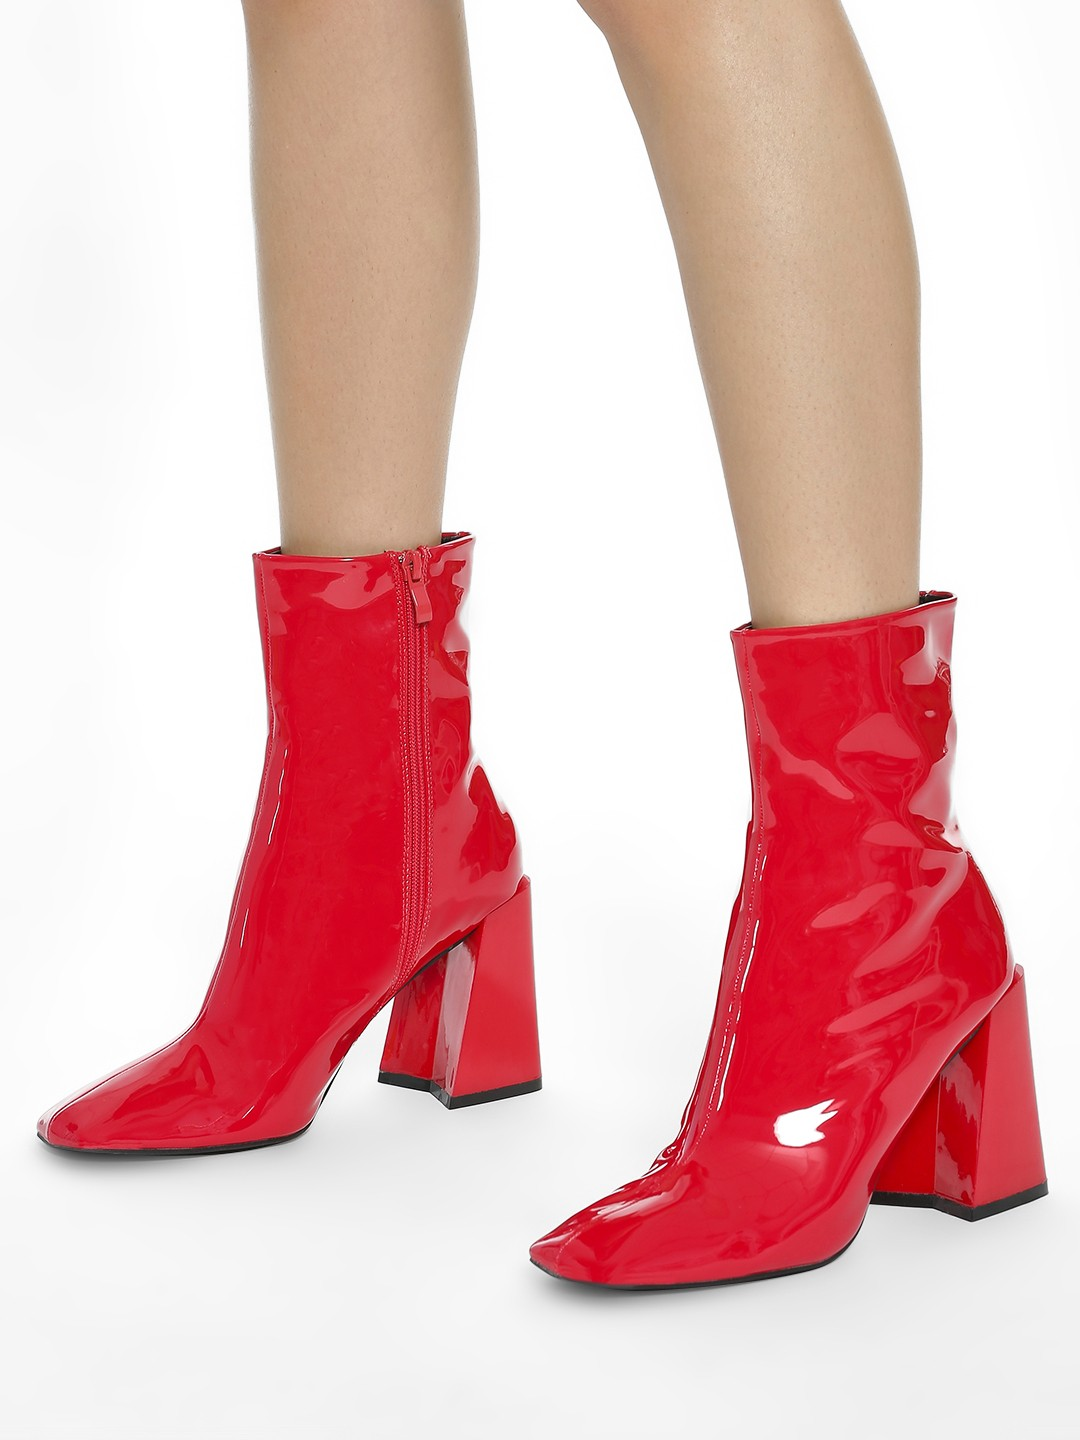 Intoto Red Patent Calf Length Boots 1